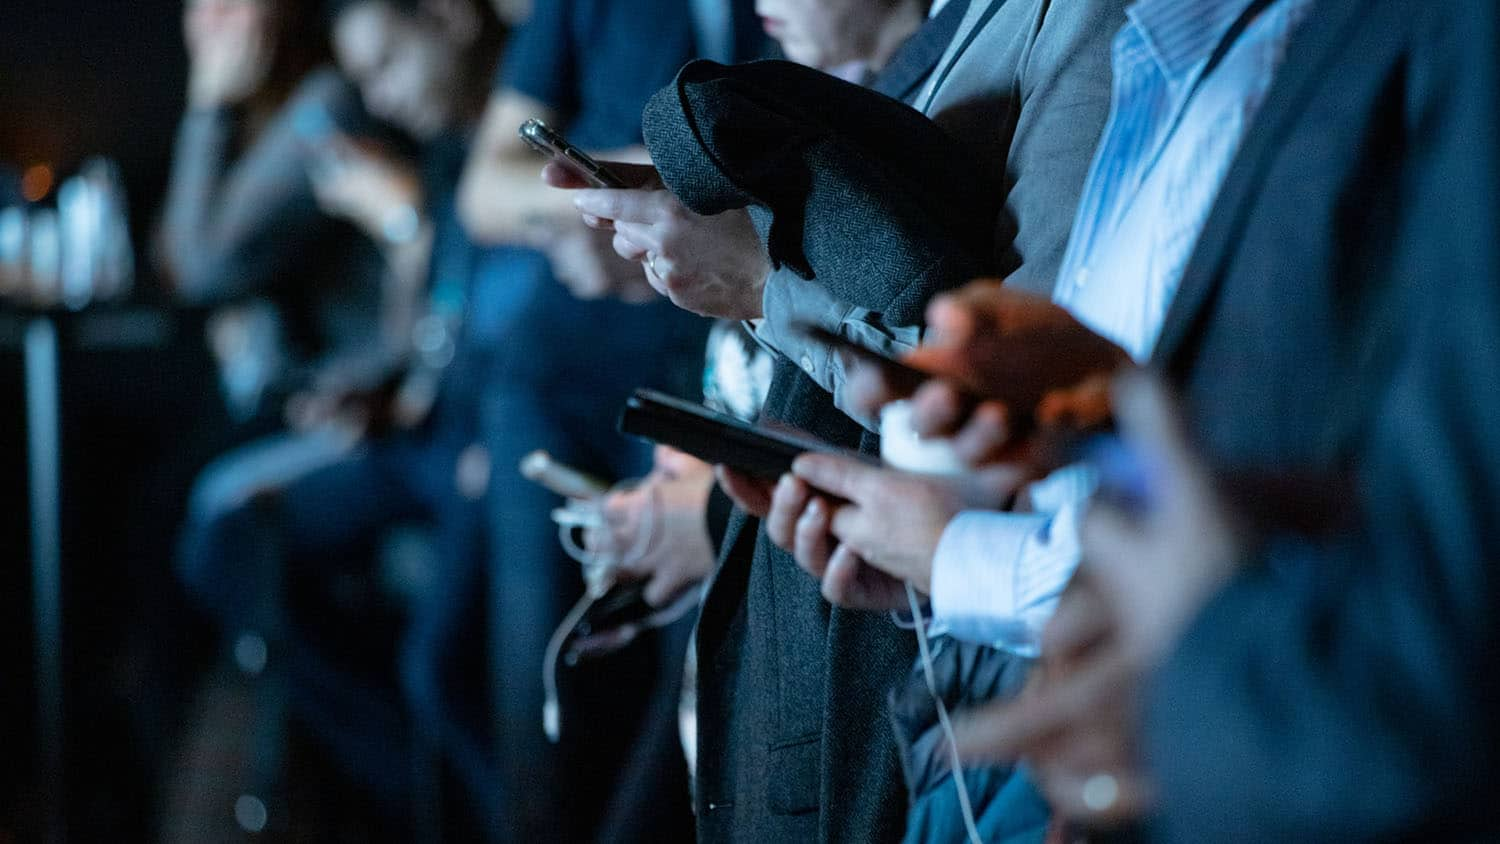 a crowd of people stand looking at their smartphones